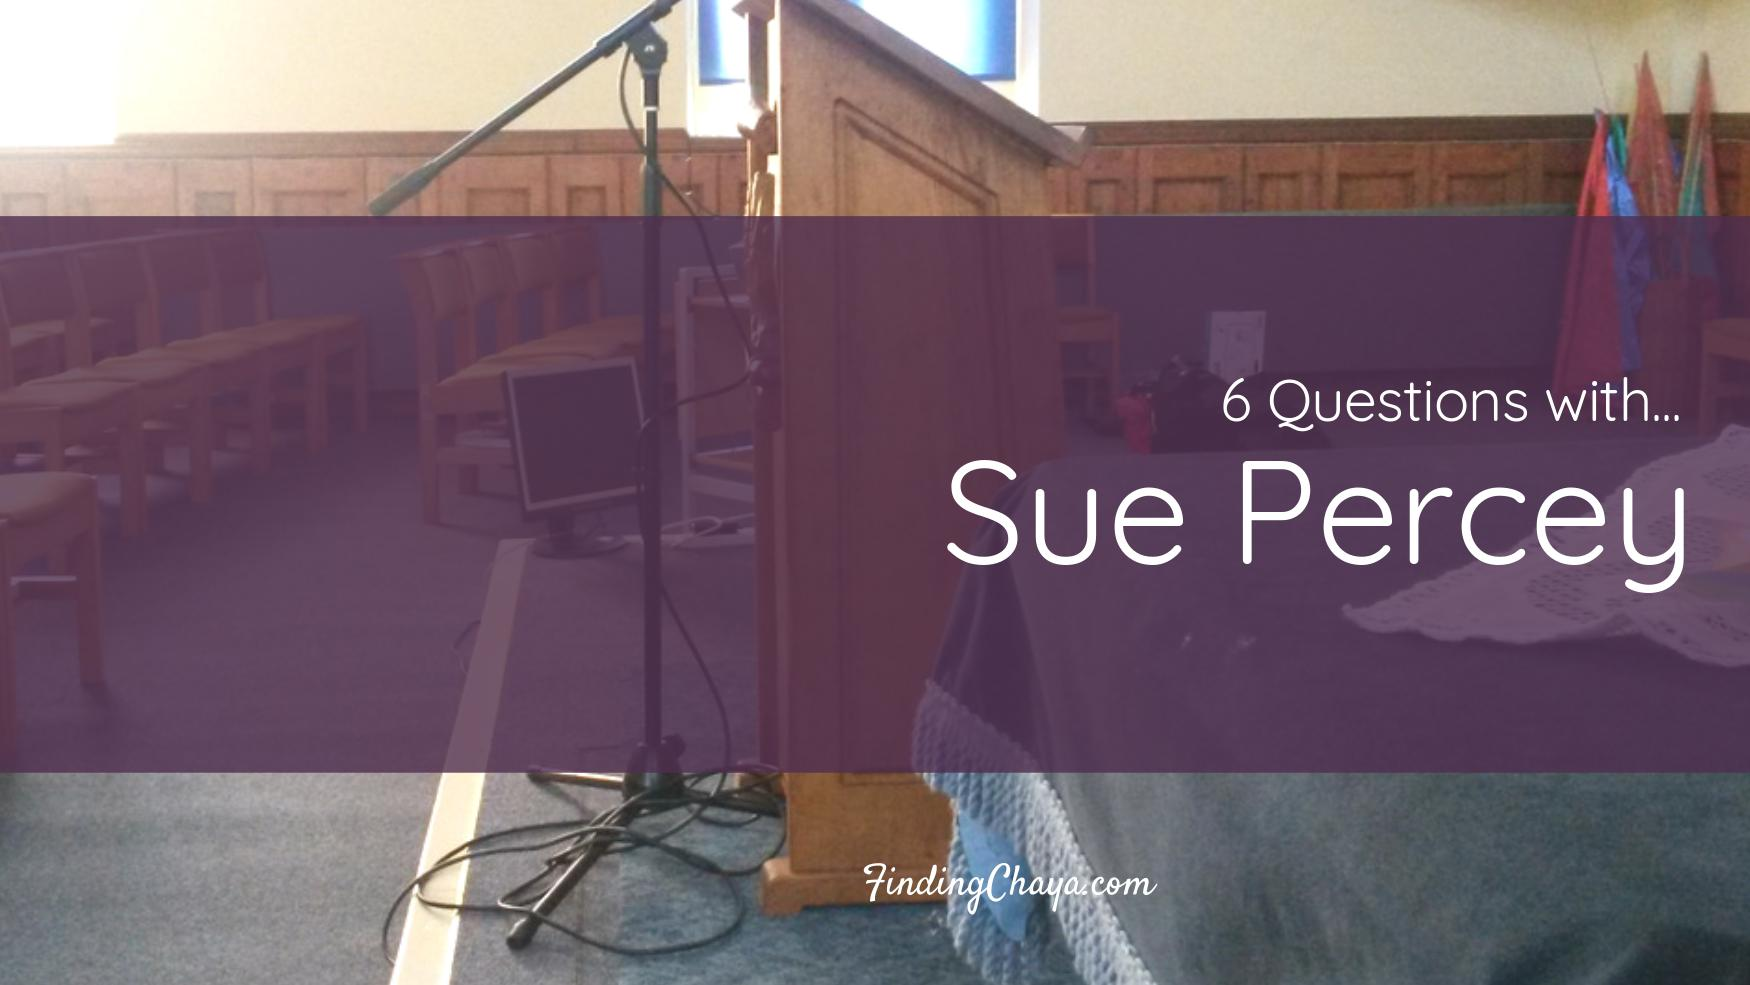 6 Questions with Sue Percey